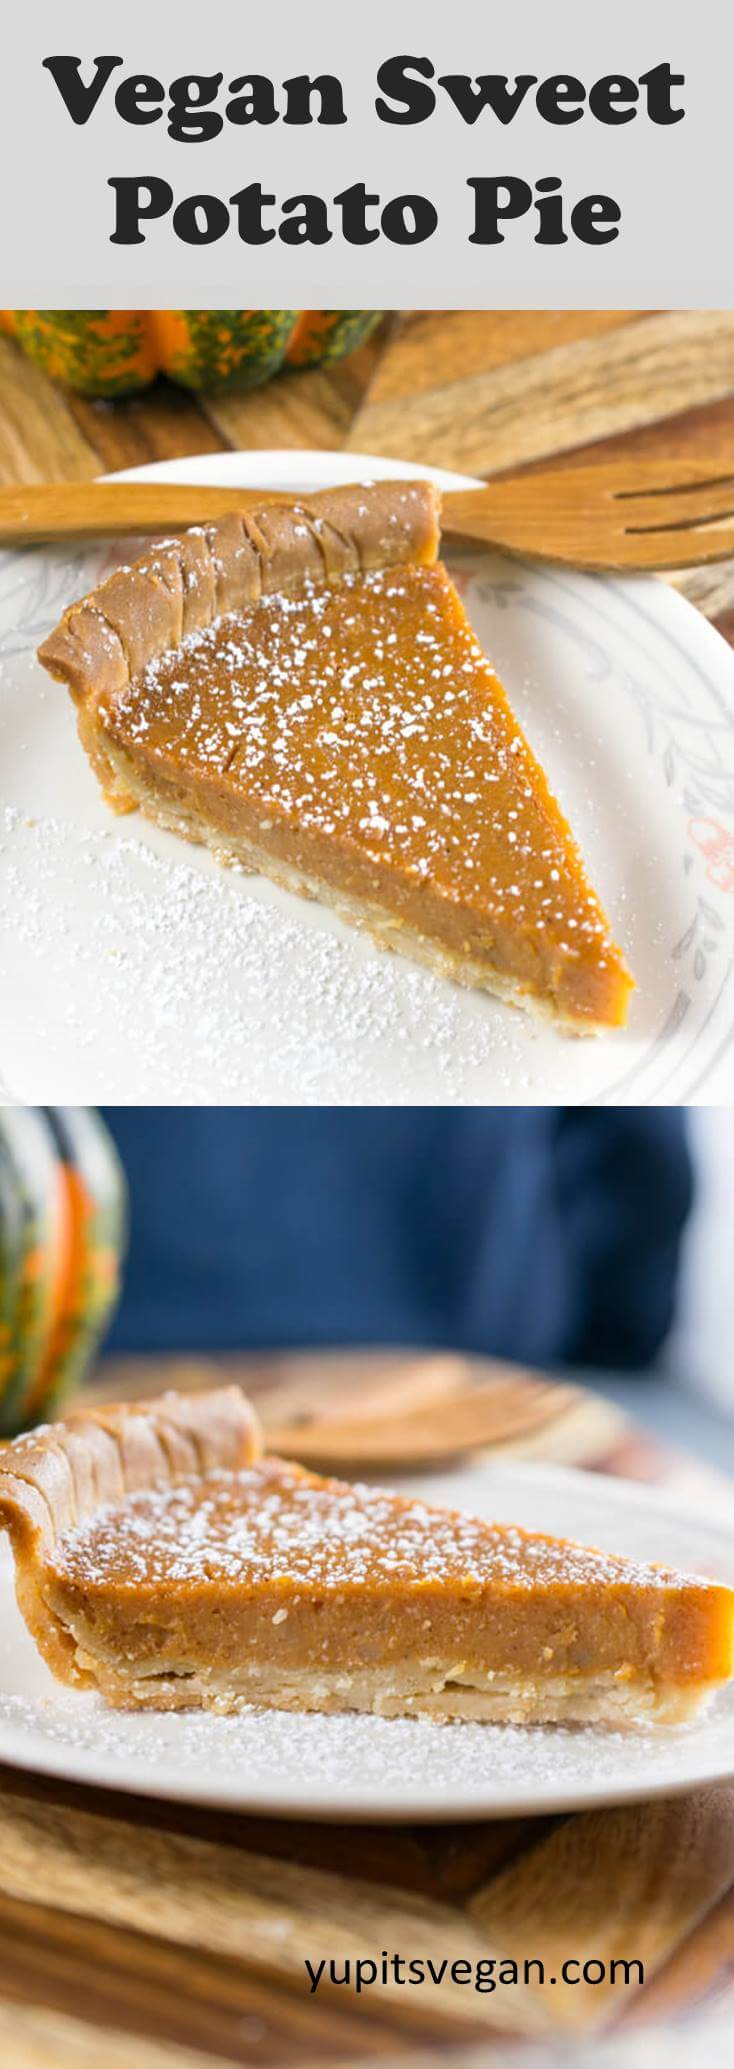 Vegan Sweet Potato Pie: A classic sweet potato pie that's also dairy-free and egg-free! Also gluten-free if GF crust is used. Creamy, subtly sweet and spiced. No tofu, no cashews, no coconut.